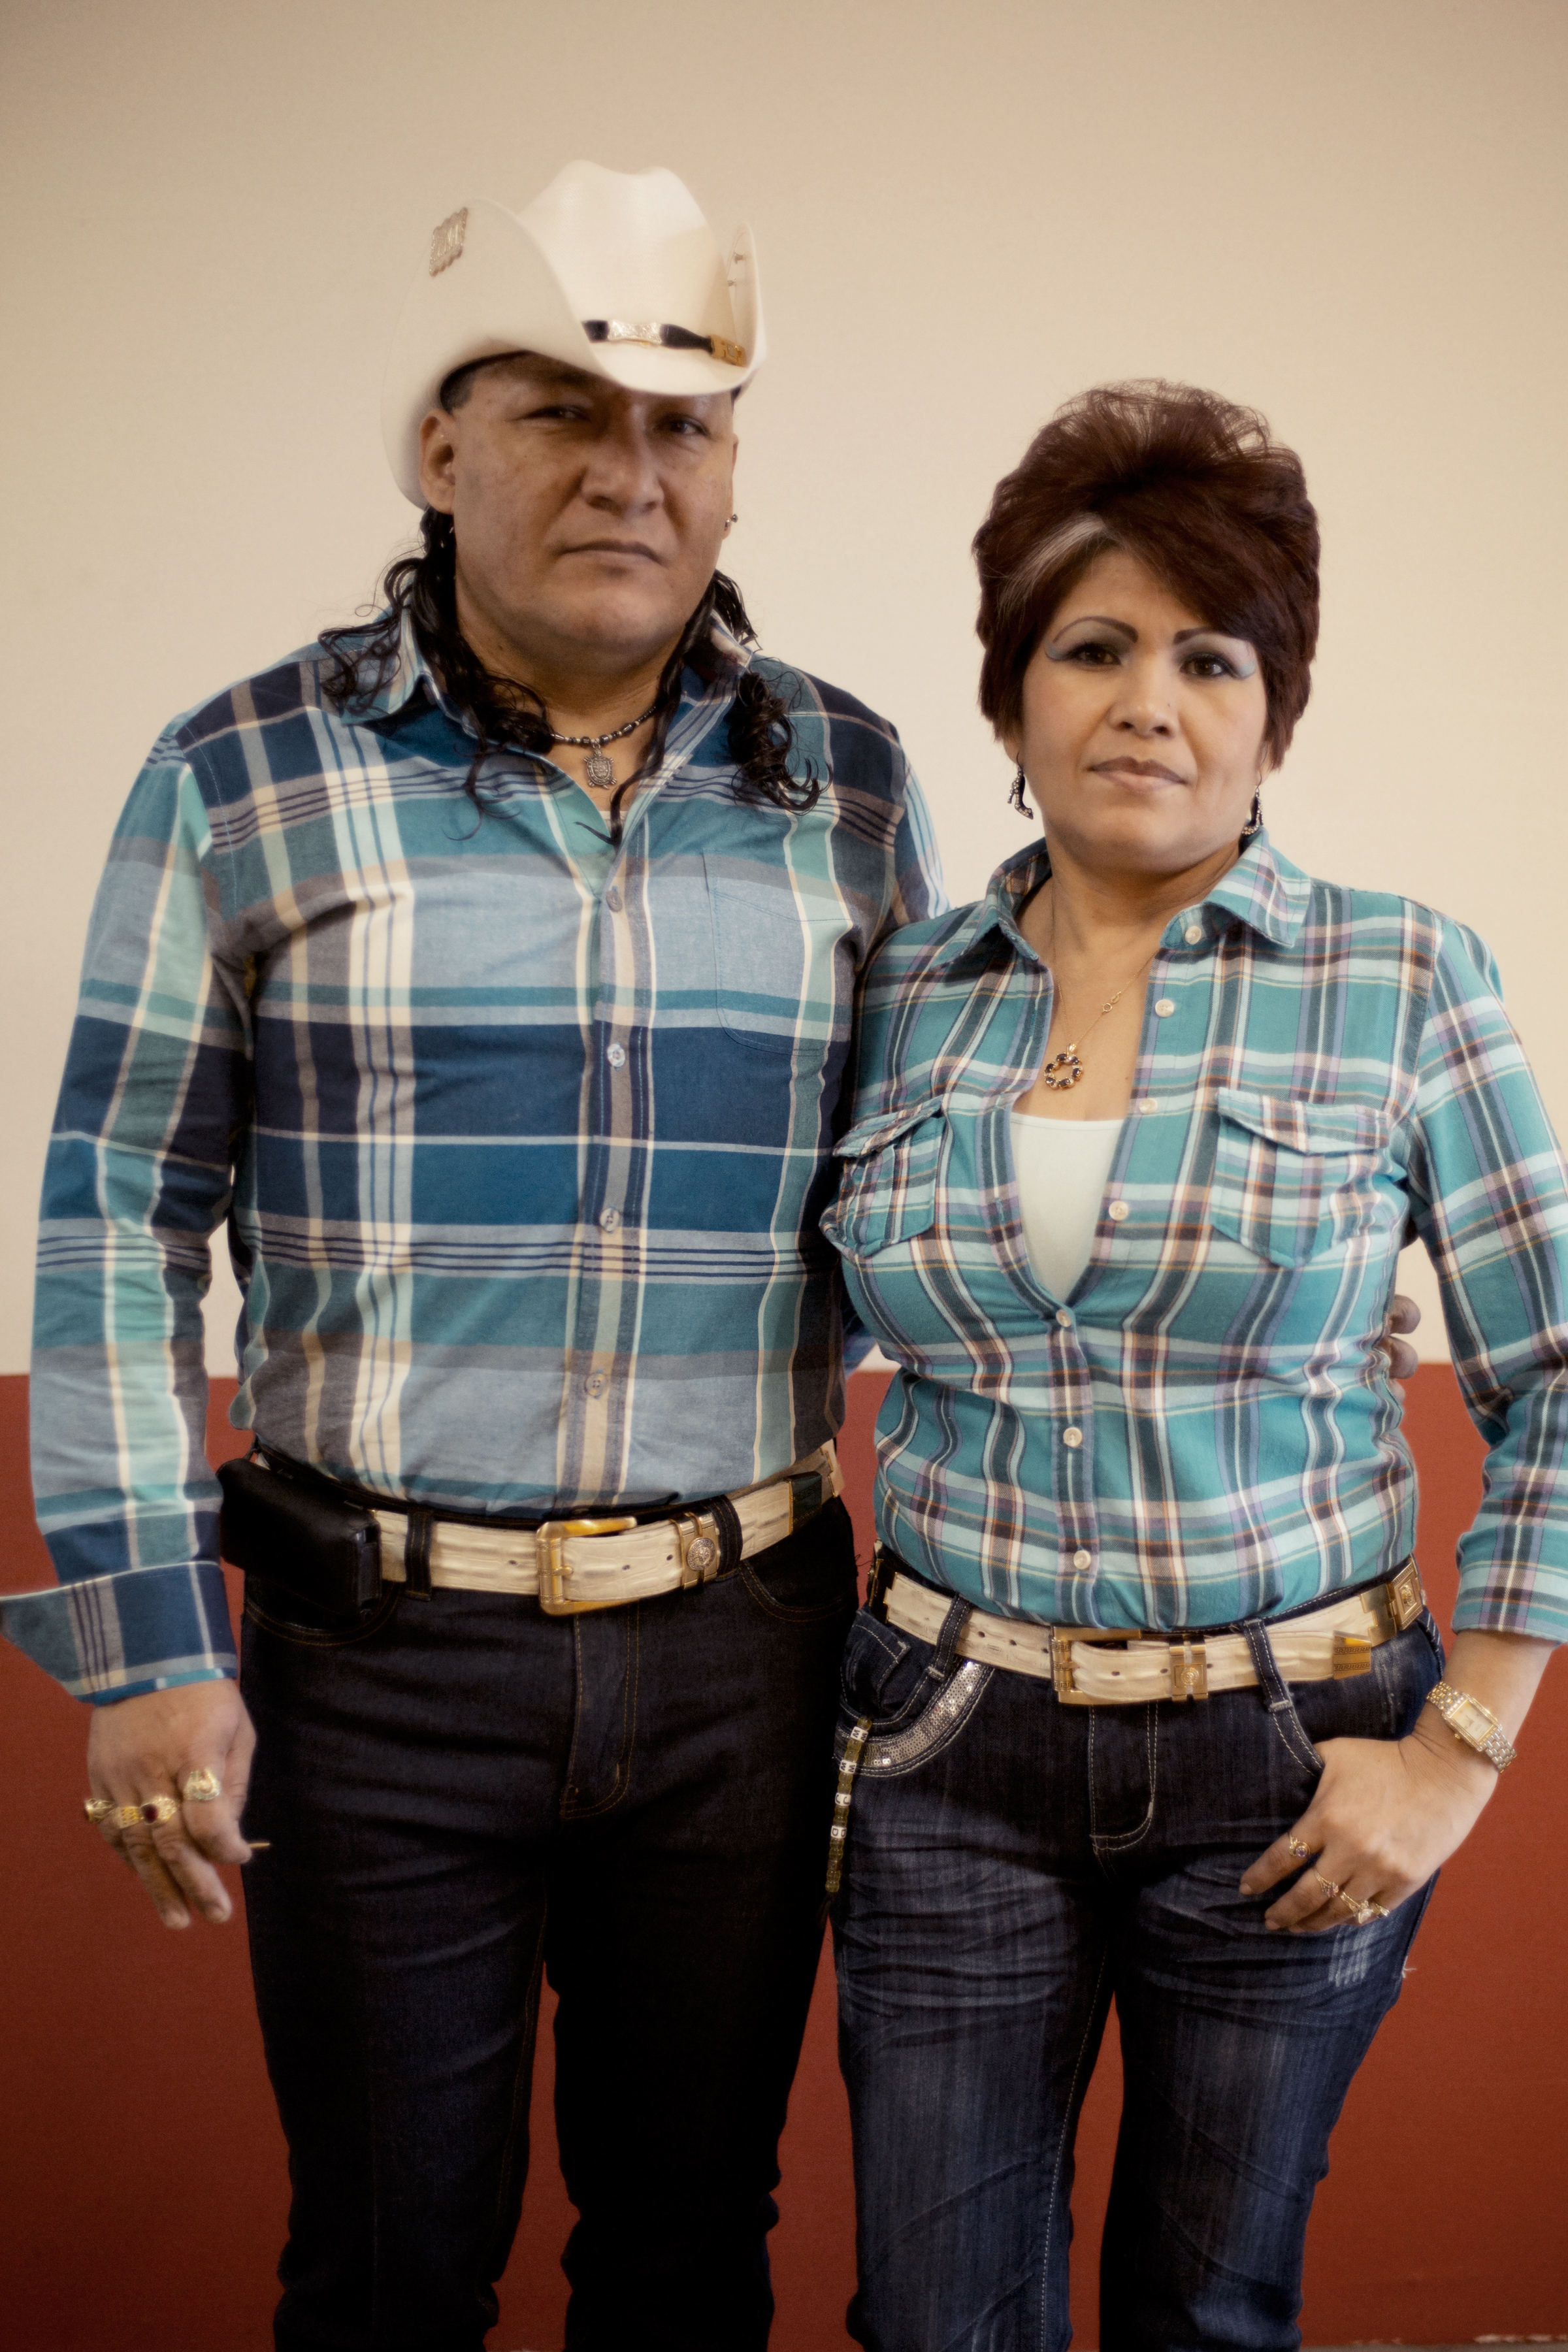 Margarito Vences and Angelita Rogeriguez, from Michoacán, Mexico, like to co-ordinate their outfits and buy clothes when they come to the mall.